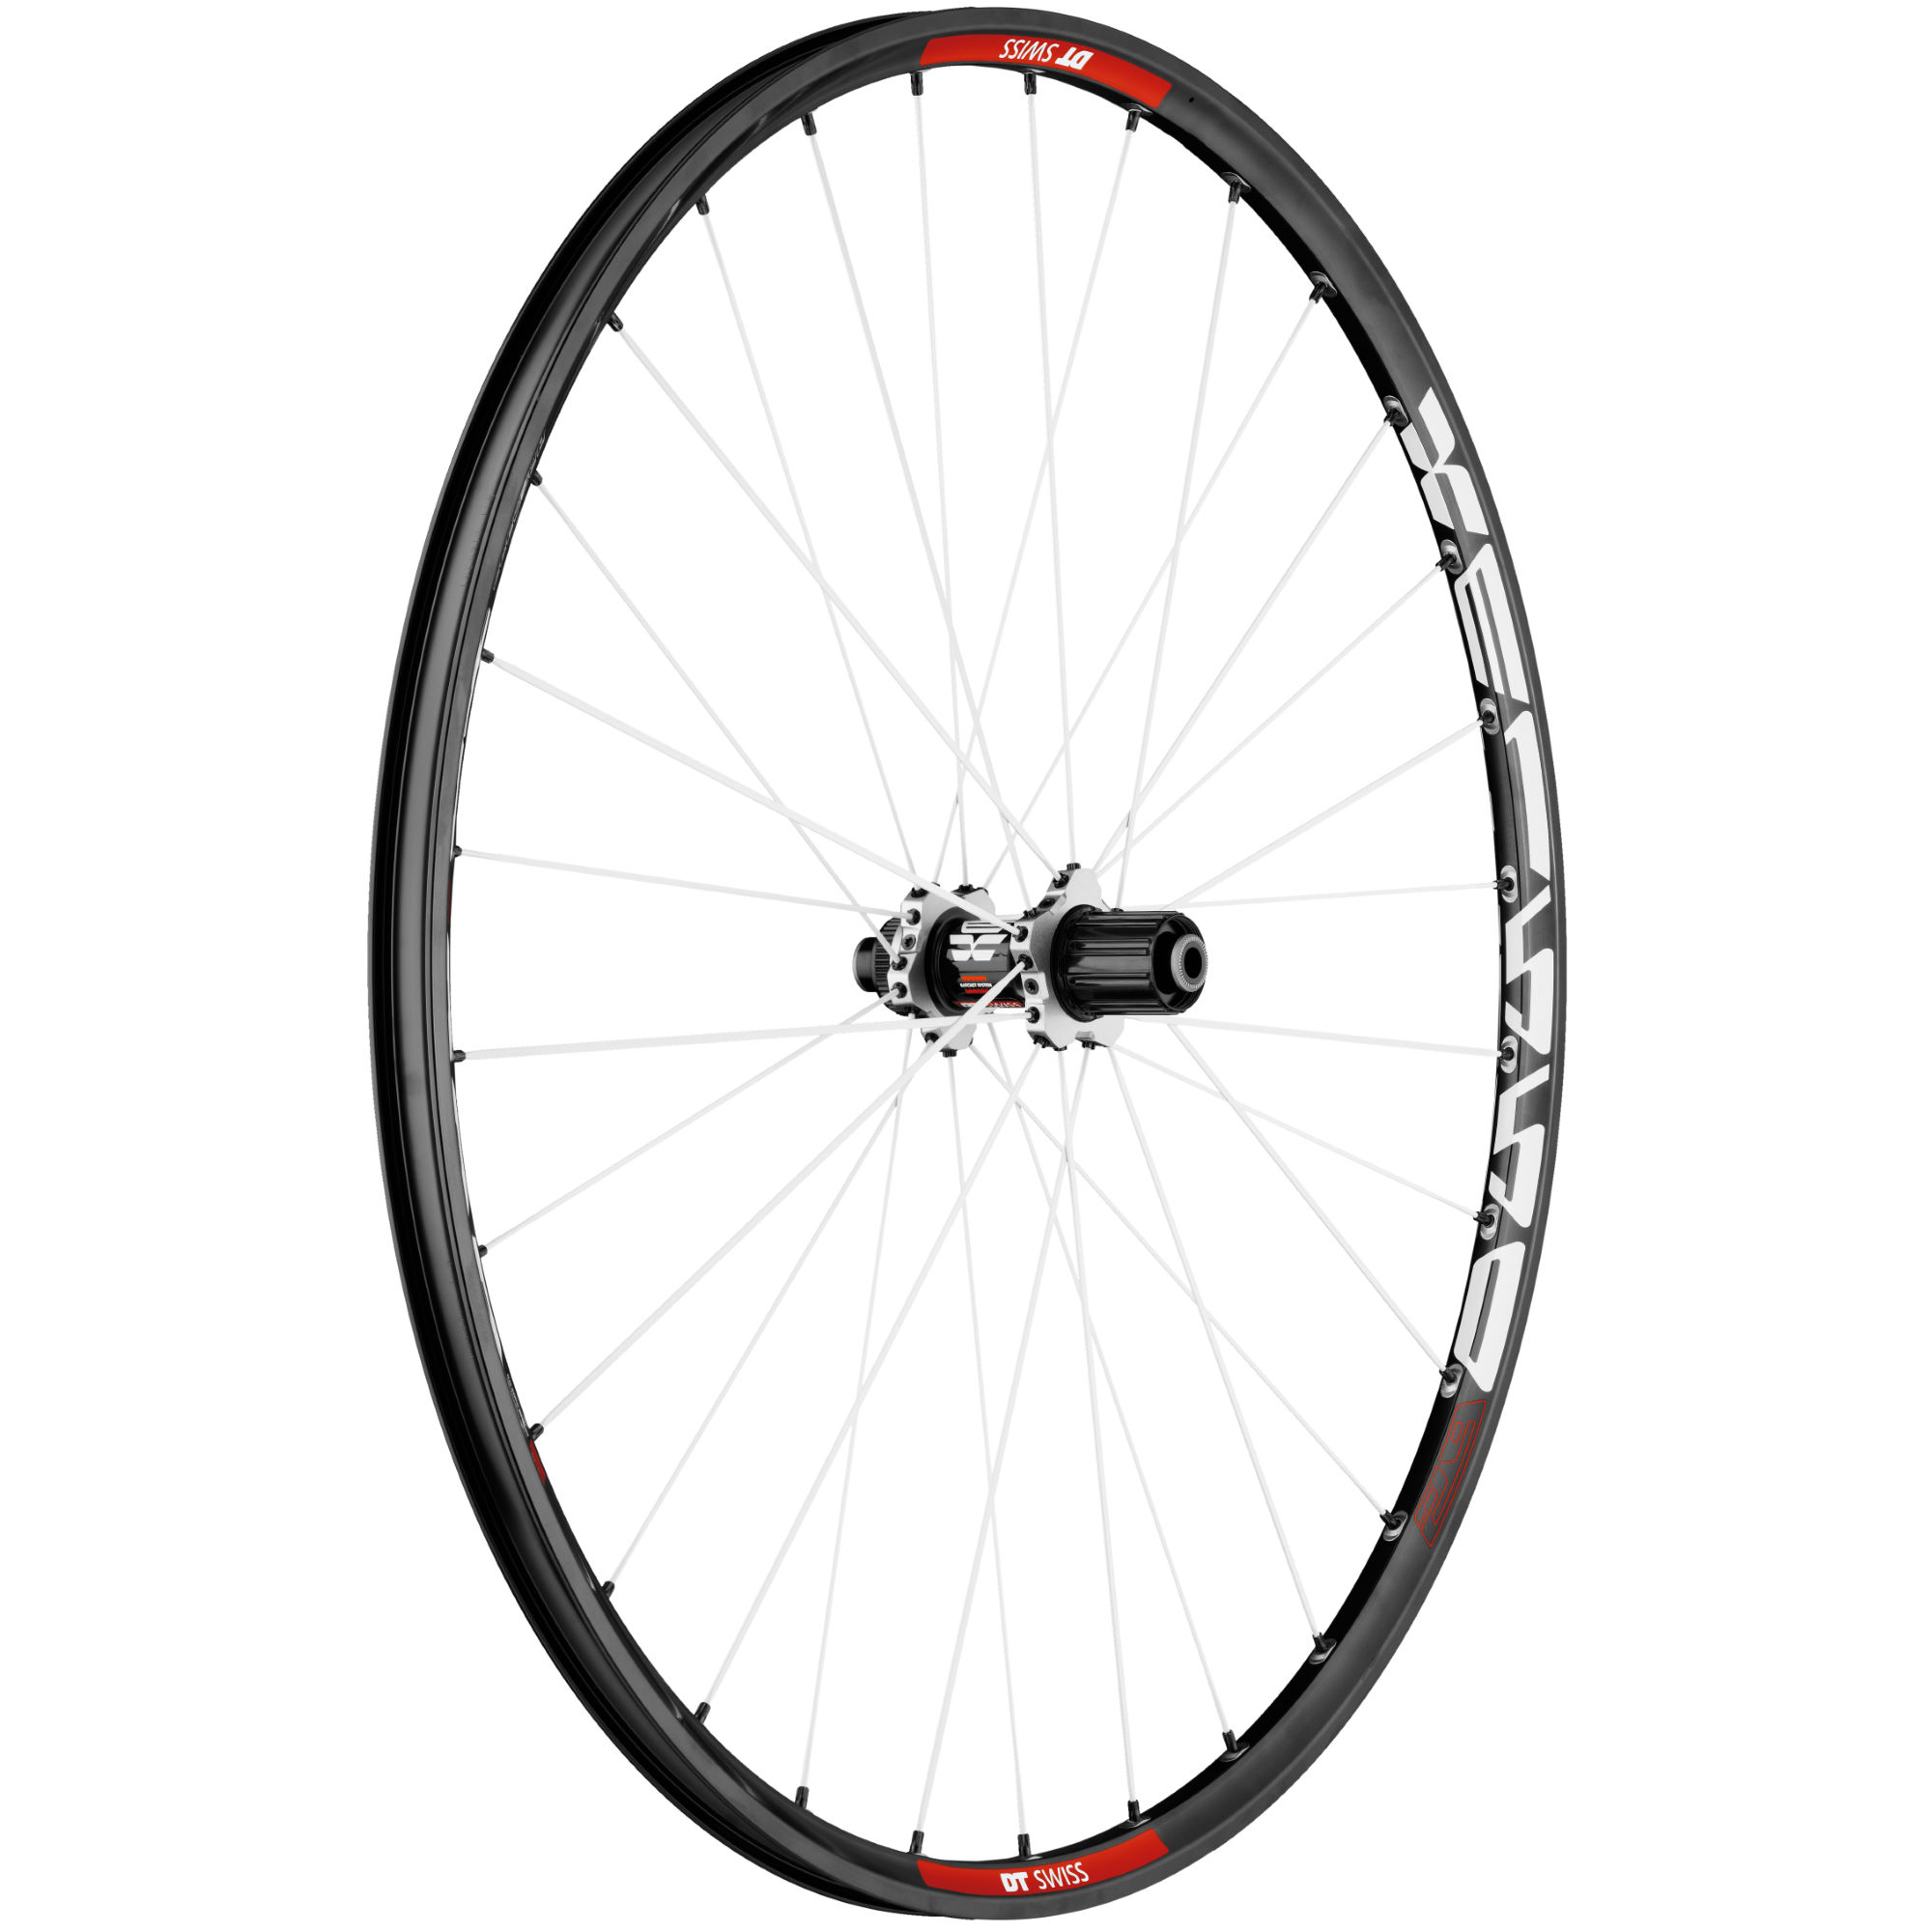 Dt Swiss Xm 1550 Tricon 29er Rear Wheel besides Til Auto Parts Store Stocks 1731051104 as well 7 moreover I0000hH7Qj2q besides Gold Forecast Higher Much Higher. on run and read 5 29